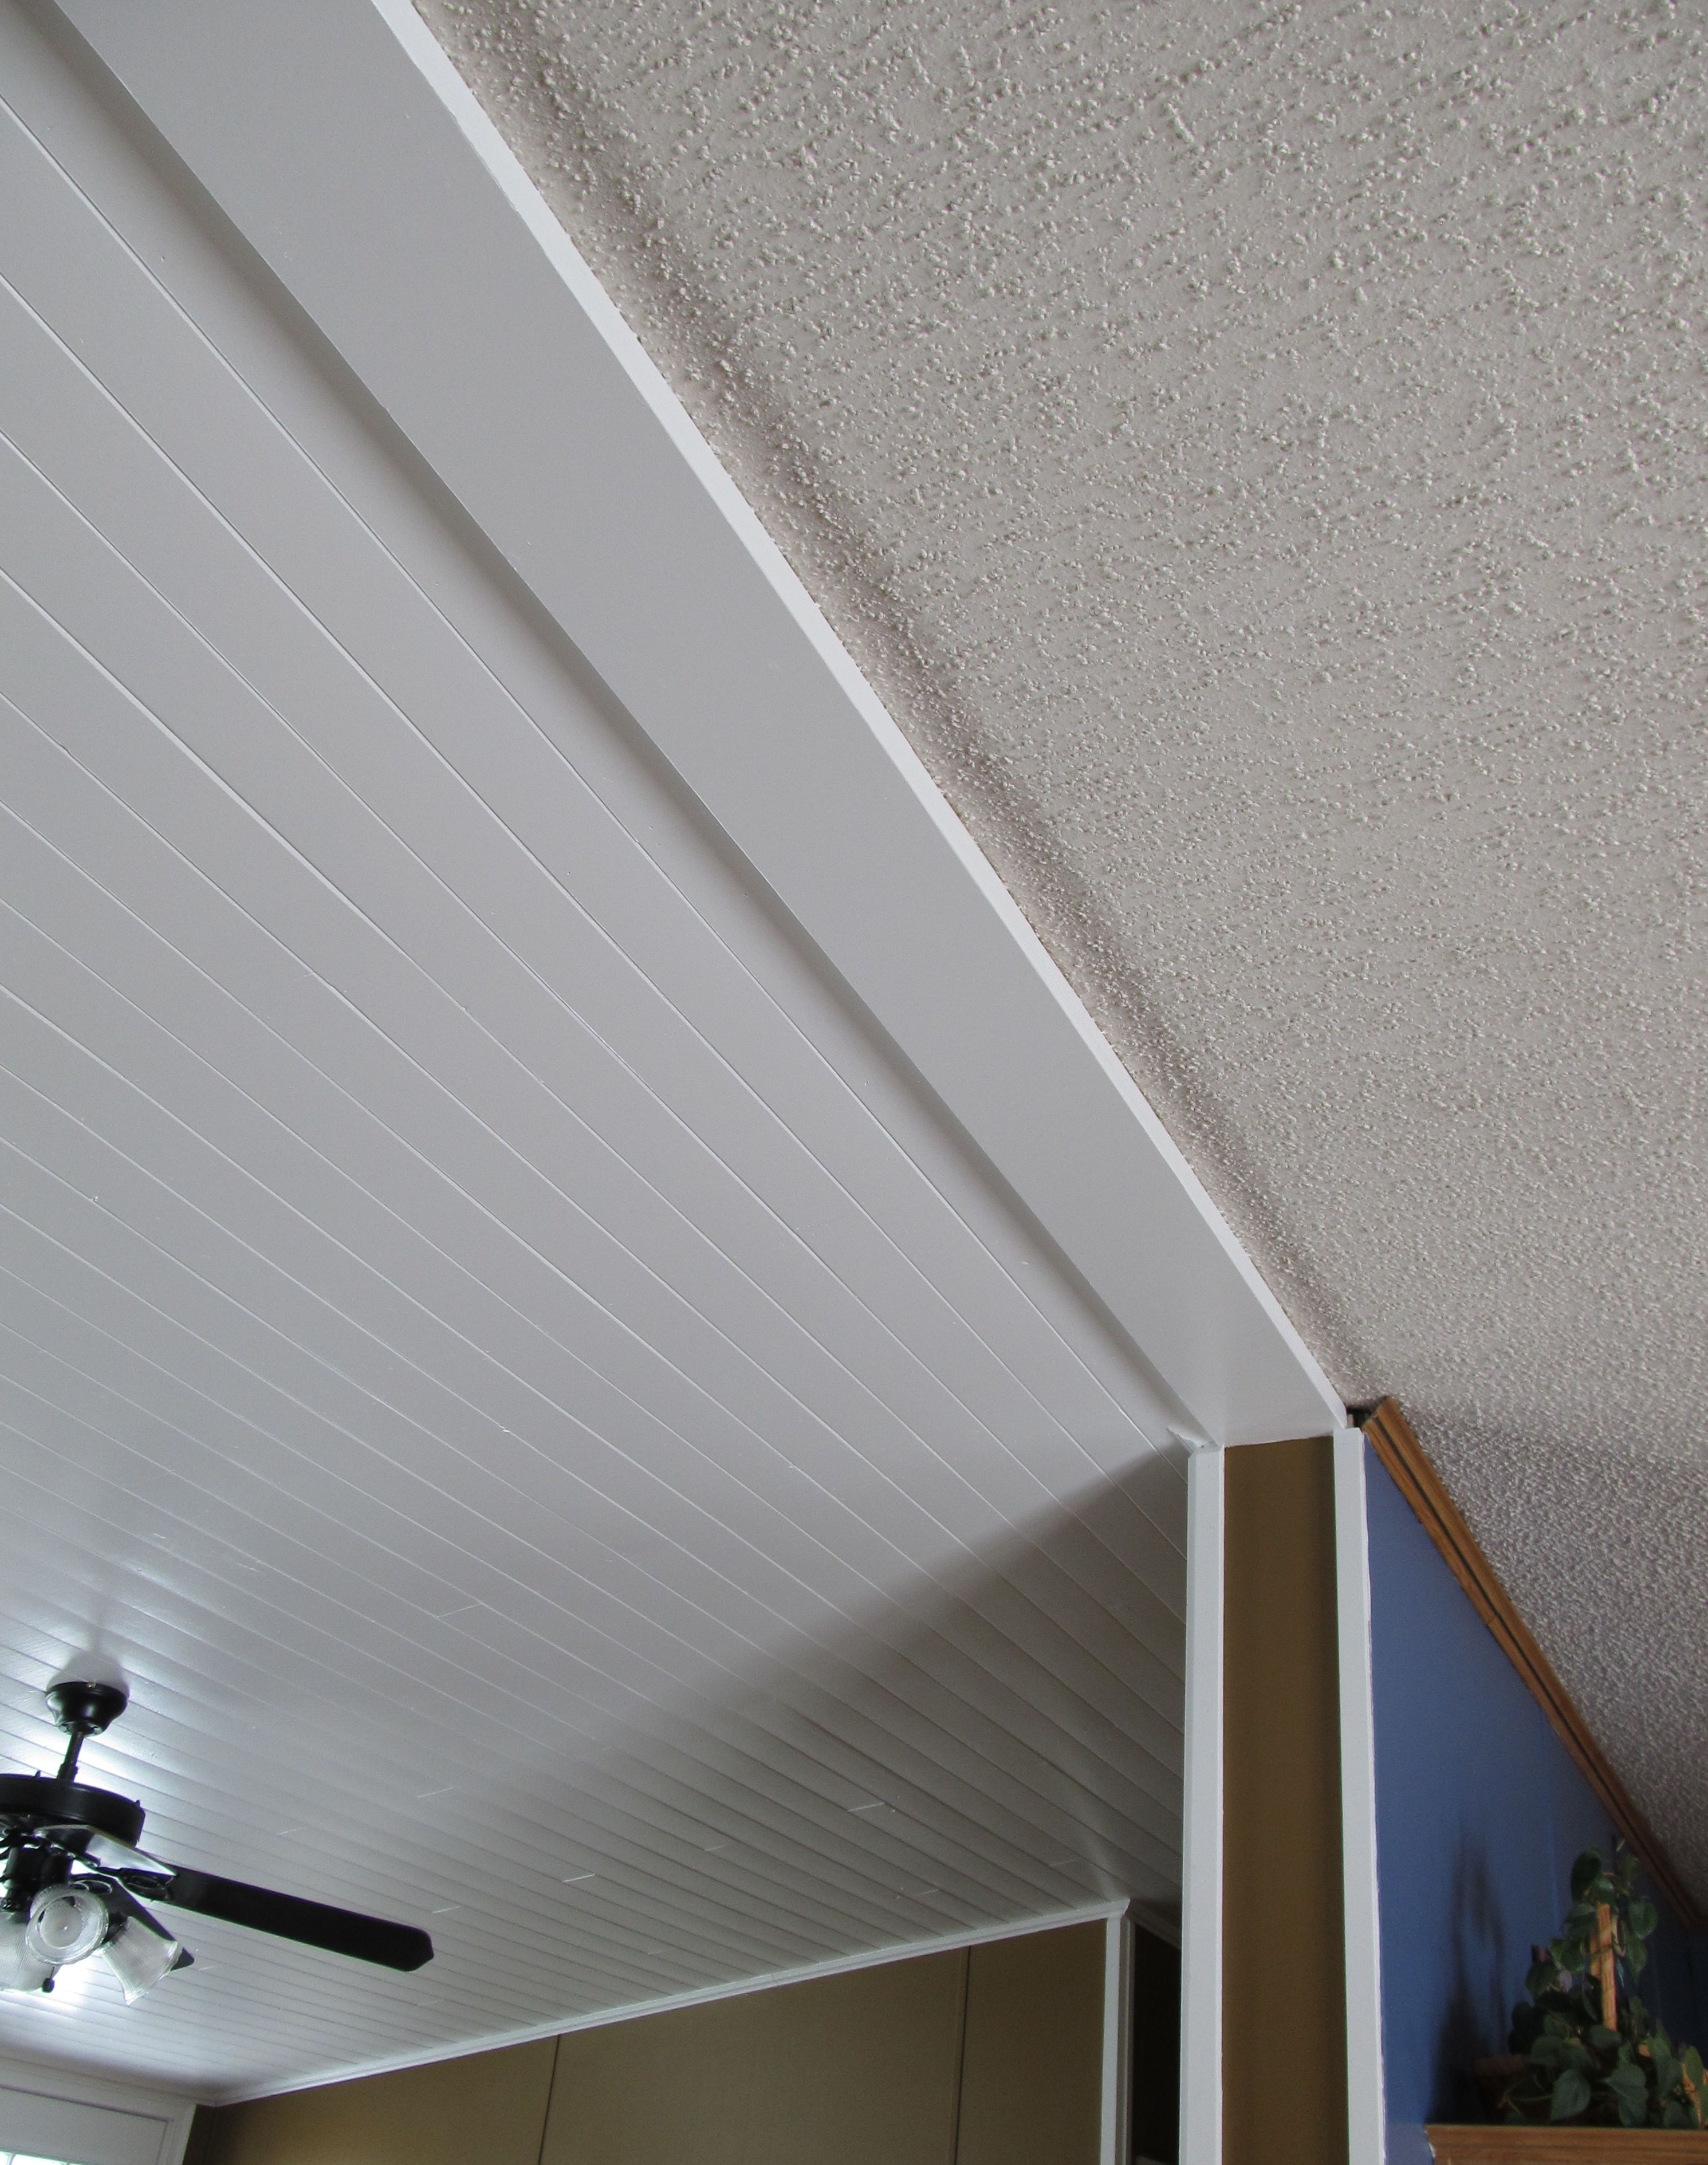 Diy Plank Ceiling Vs Popcorn Ceiling This Shows The New White Planking In The Living Room Against The Popcorn Ceiling In My Dining R Home Salon Home Remodeling Ceiling